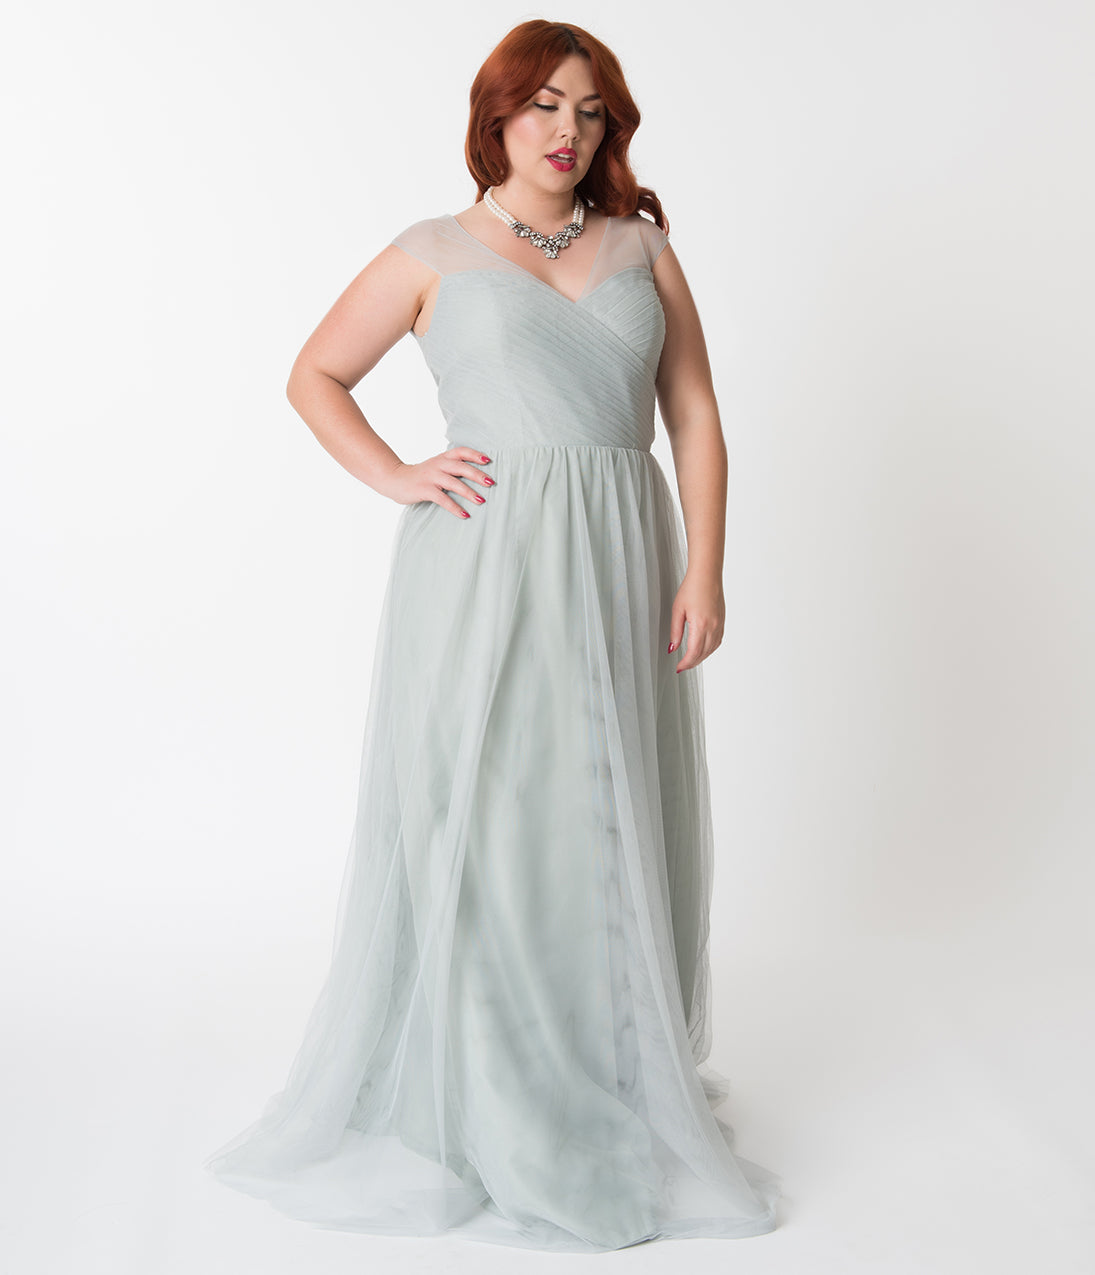 1950s Plus Size Dresses, Swing Dresses Plus Size Eucalyptus Green Mesh Wrapped Sweetheart Neckline Long Dress $110.00 AT vintagedancer.com